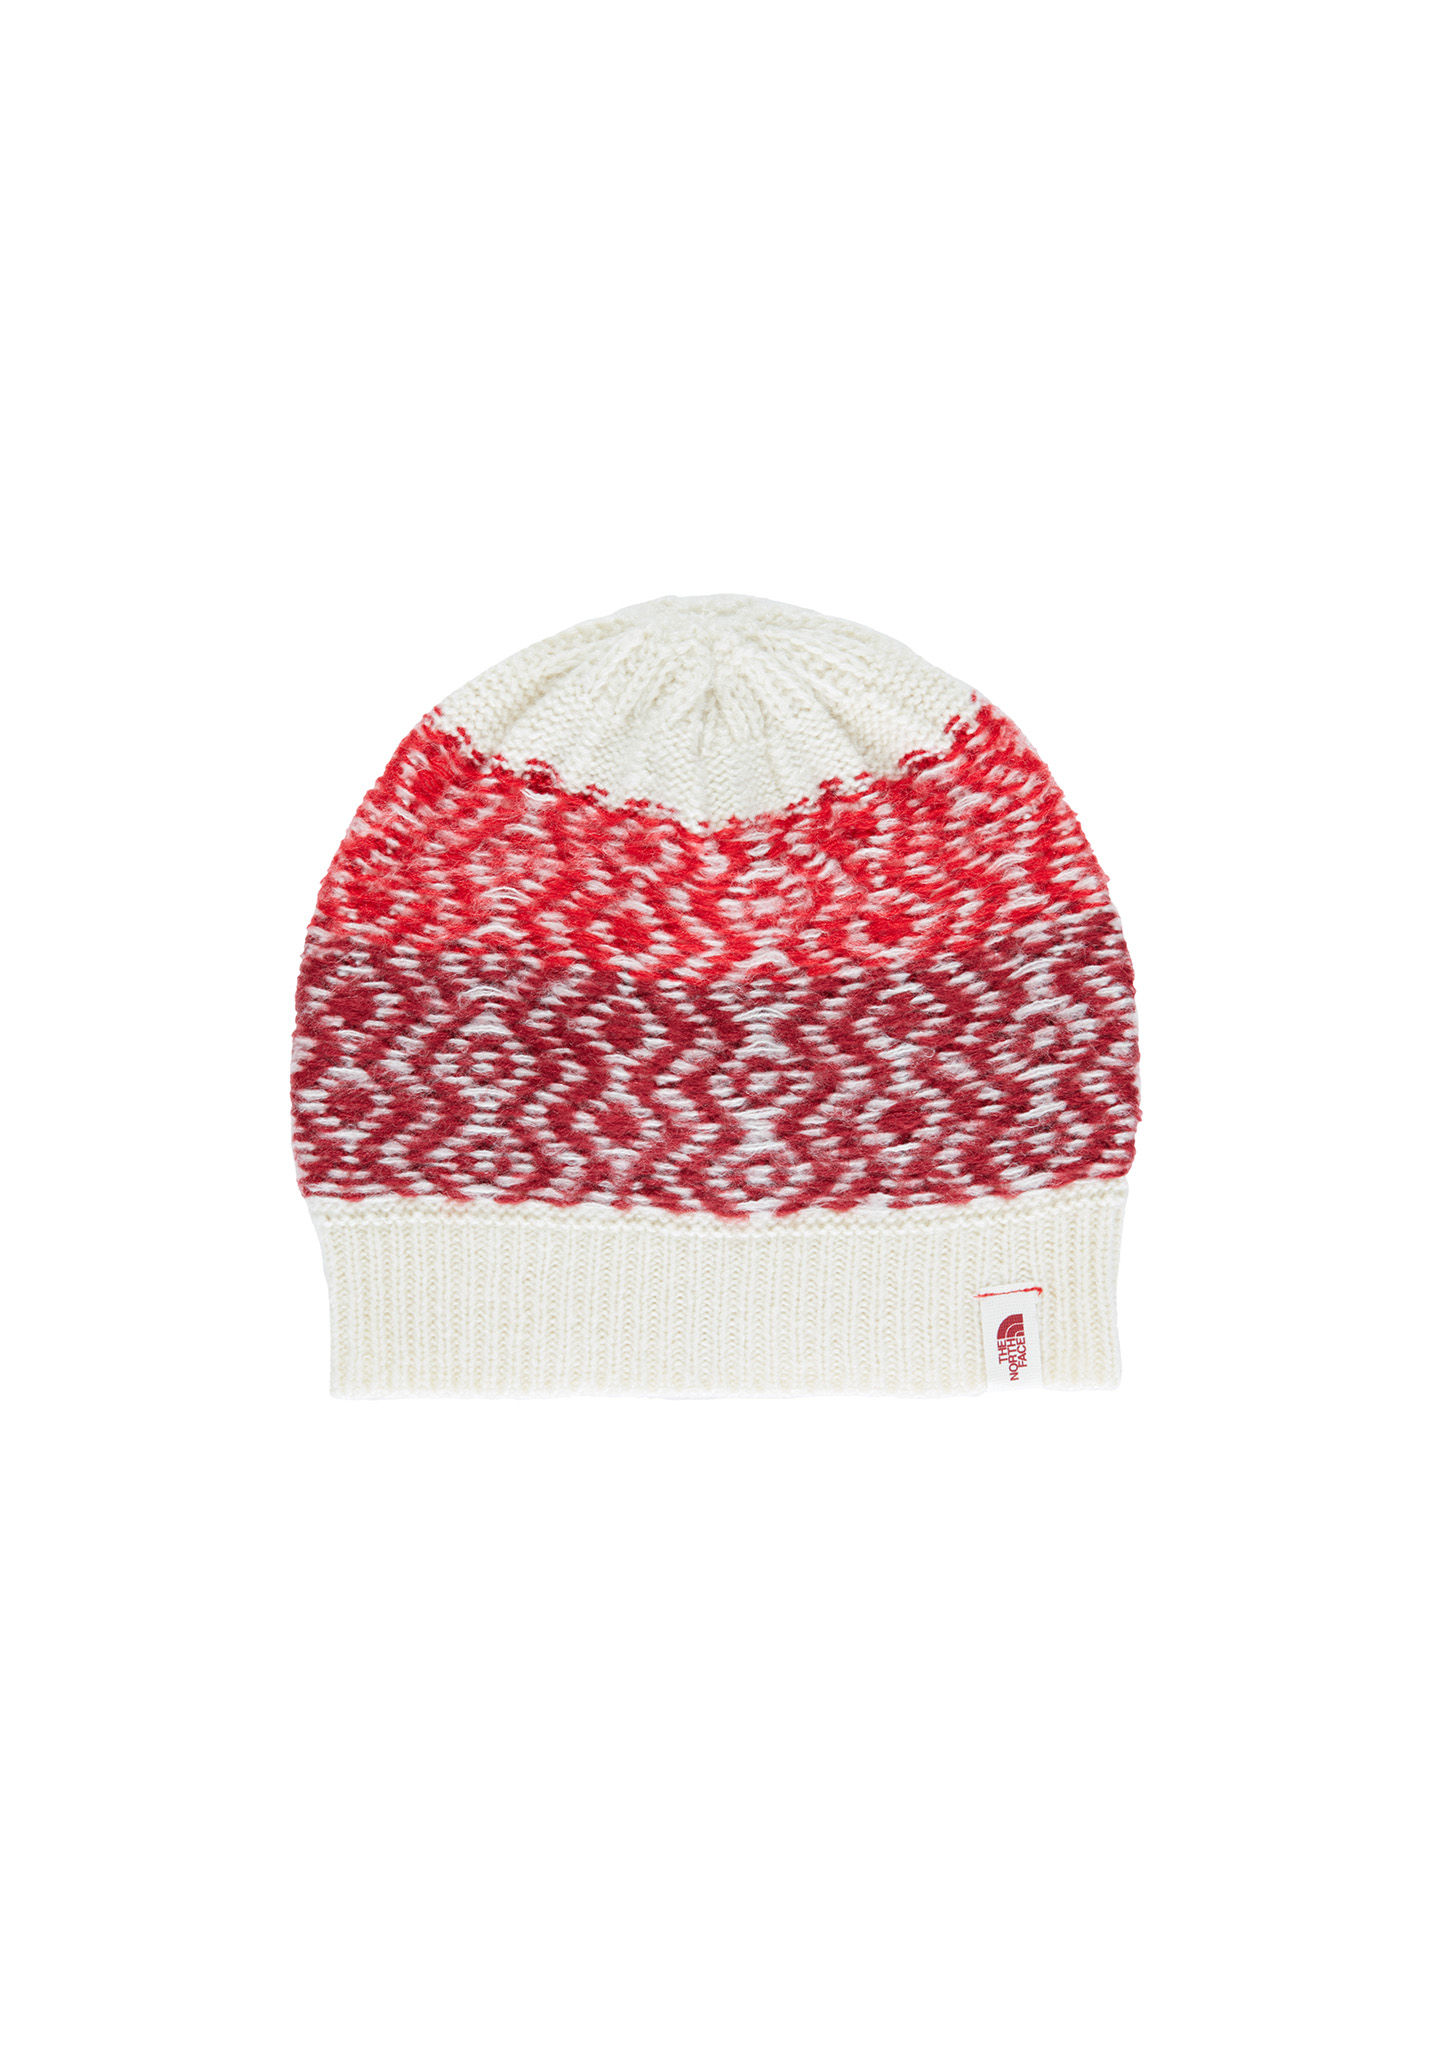 04f5d341848 THE NORTH FACE Tribe N True - Beanie for Women - White - Planet Sports